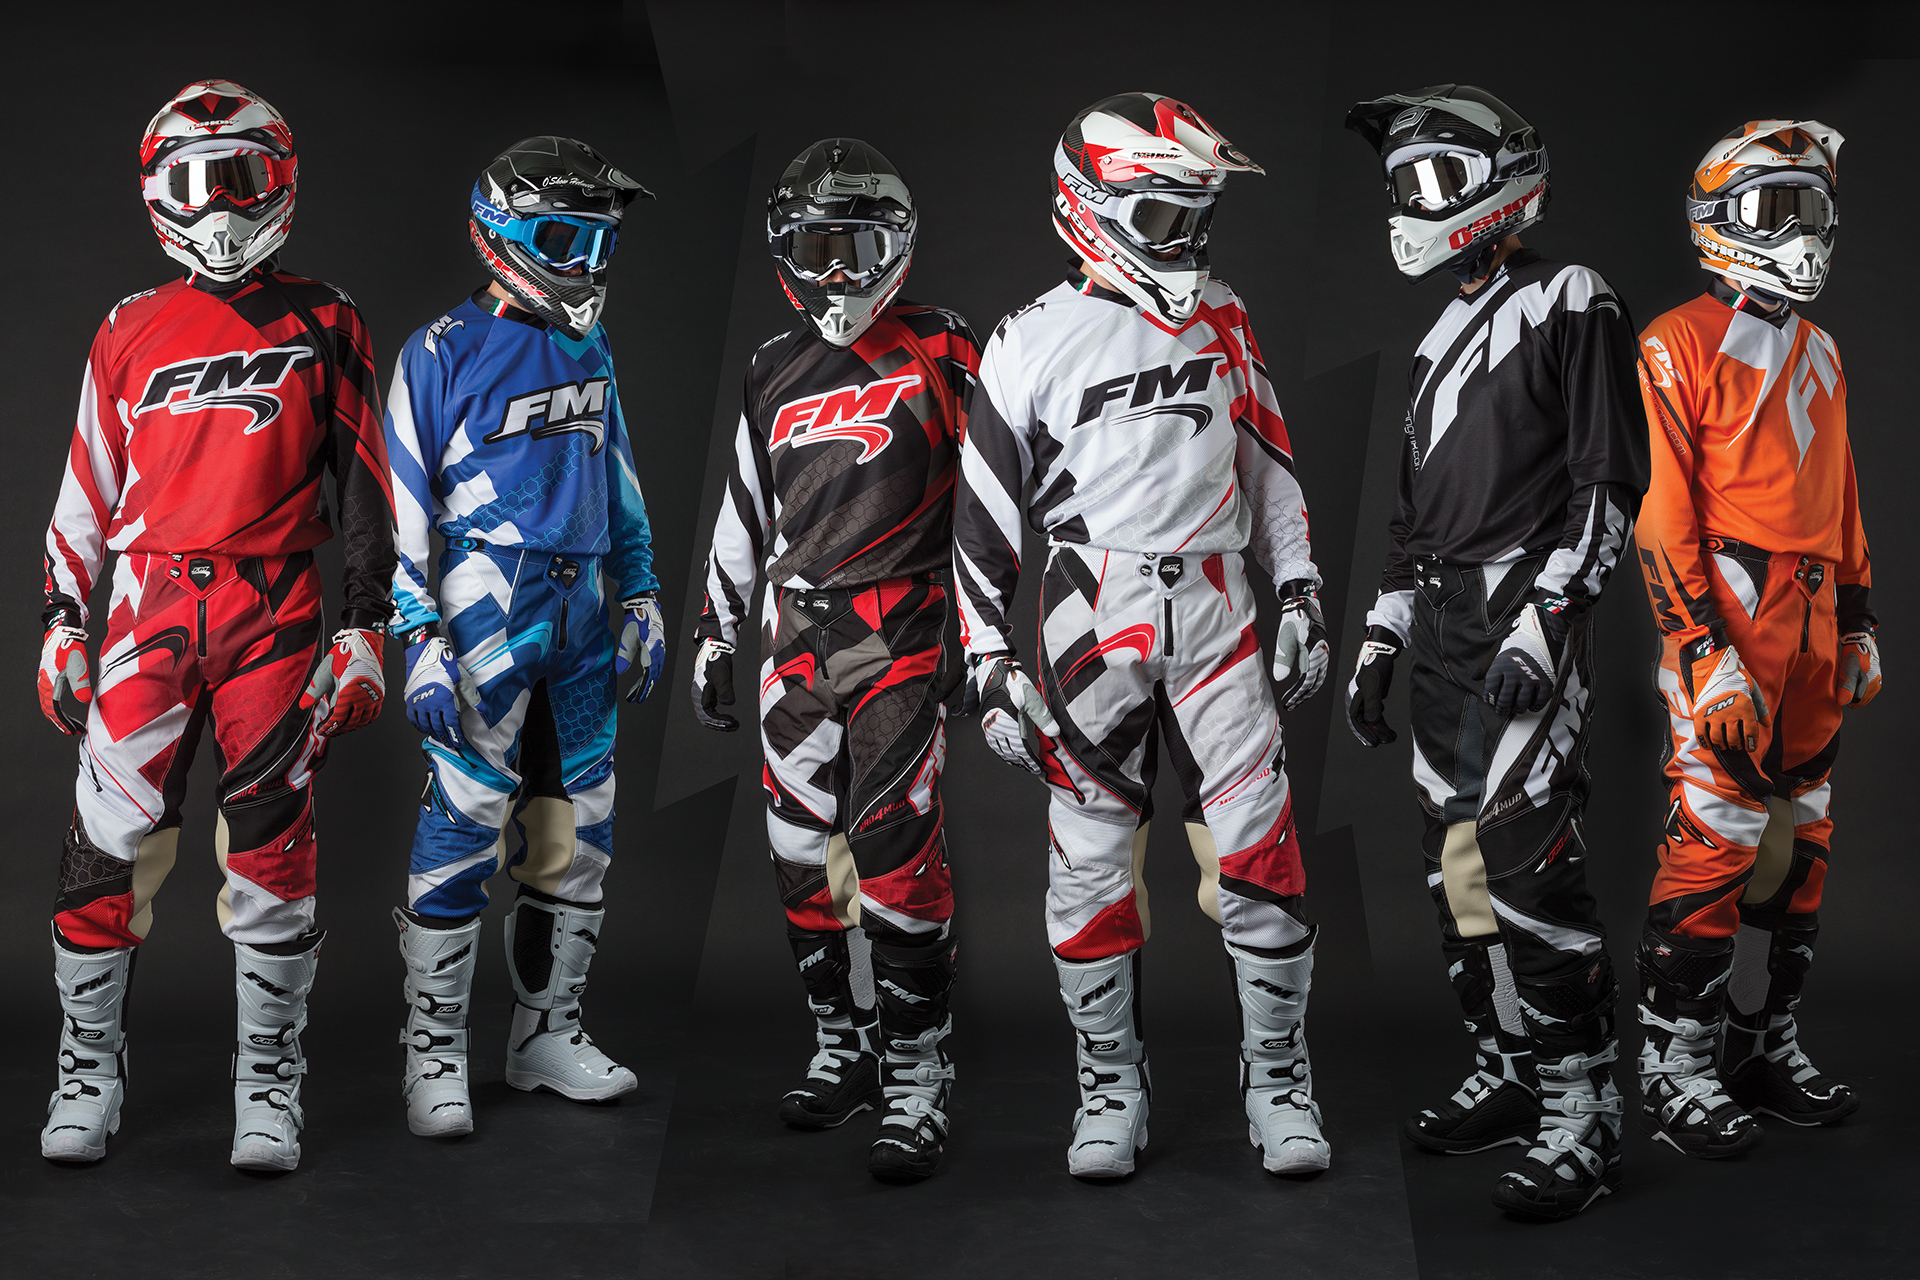 onafez design fm racing mx gear off-road helmets